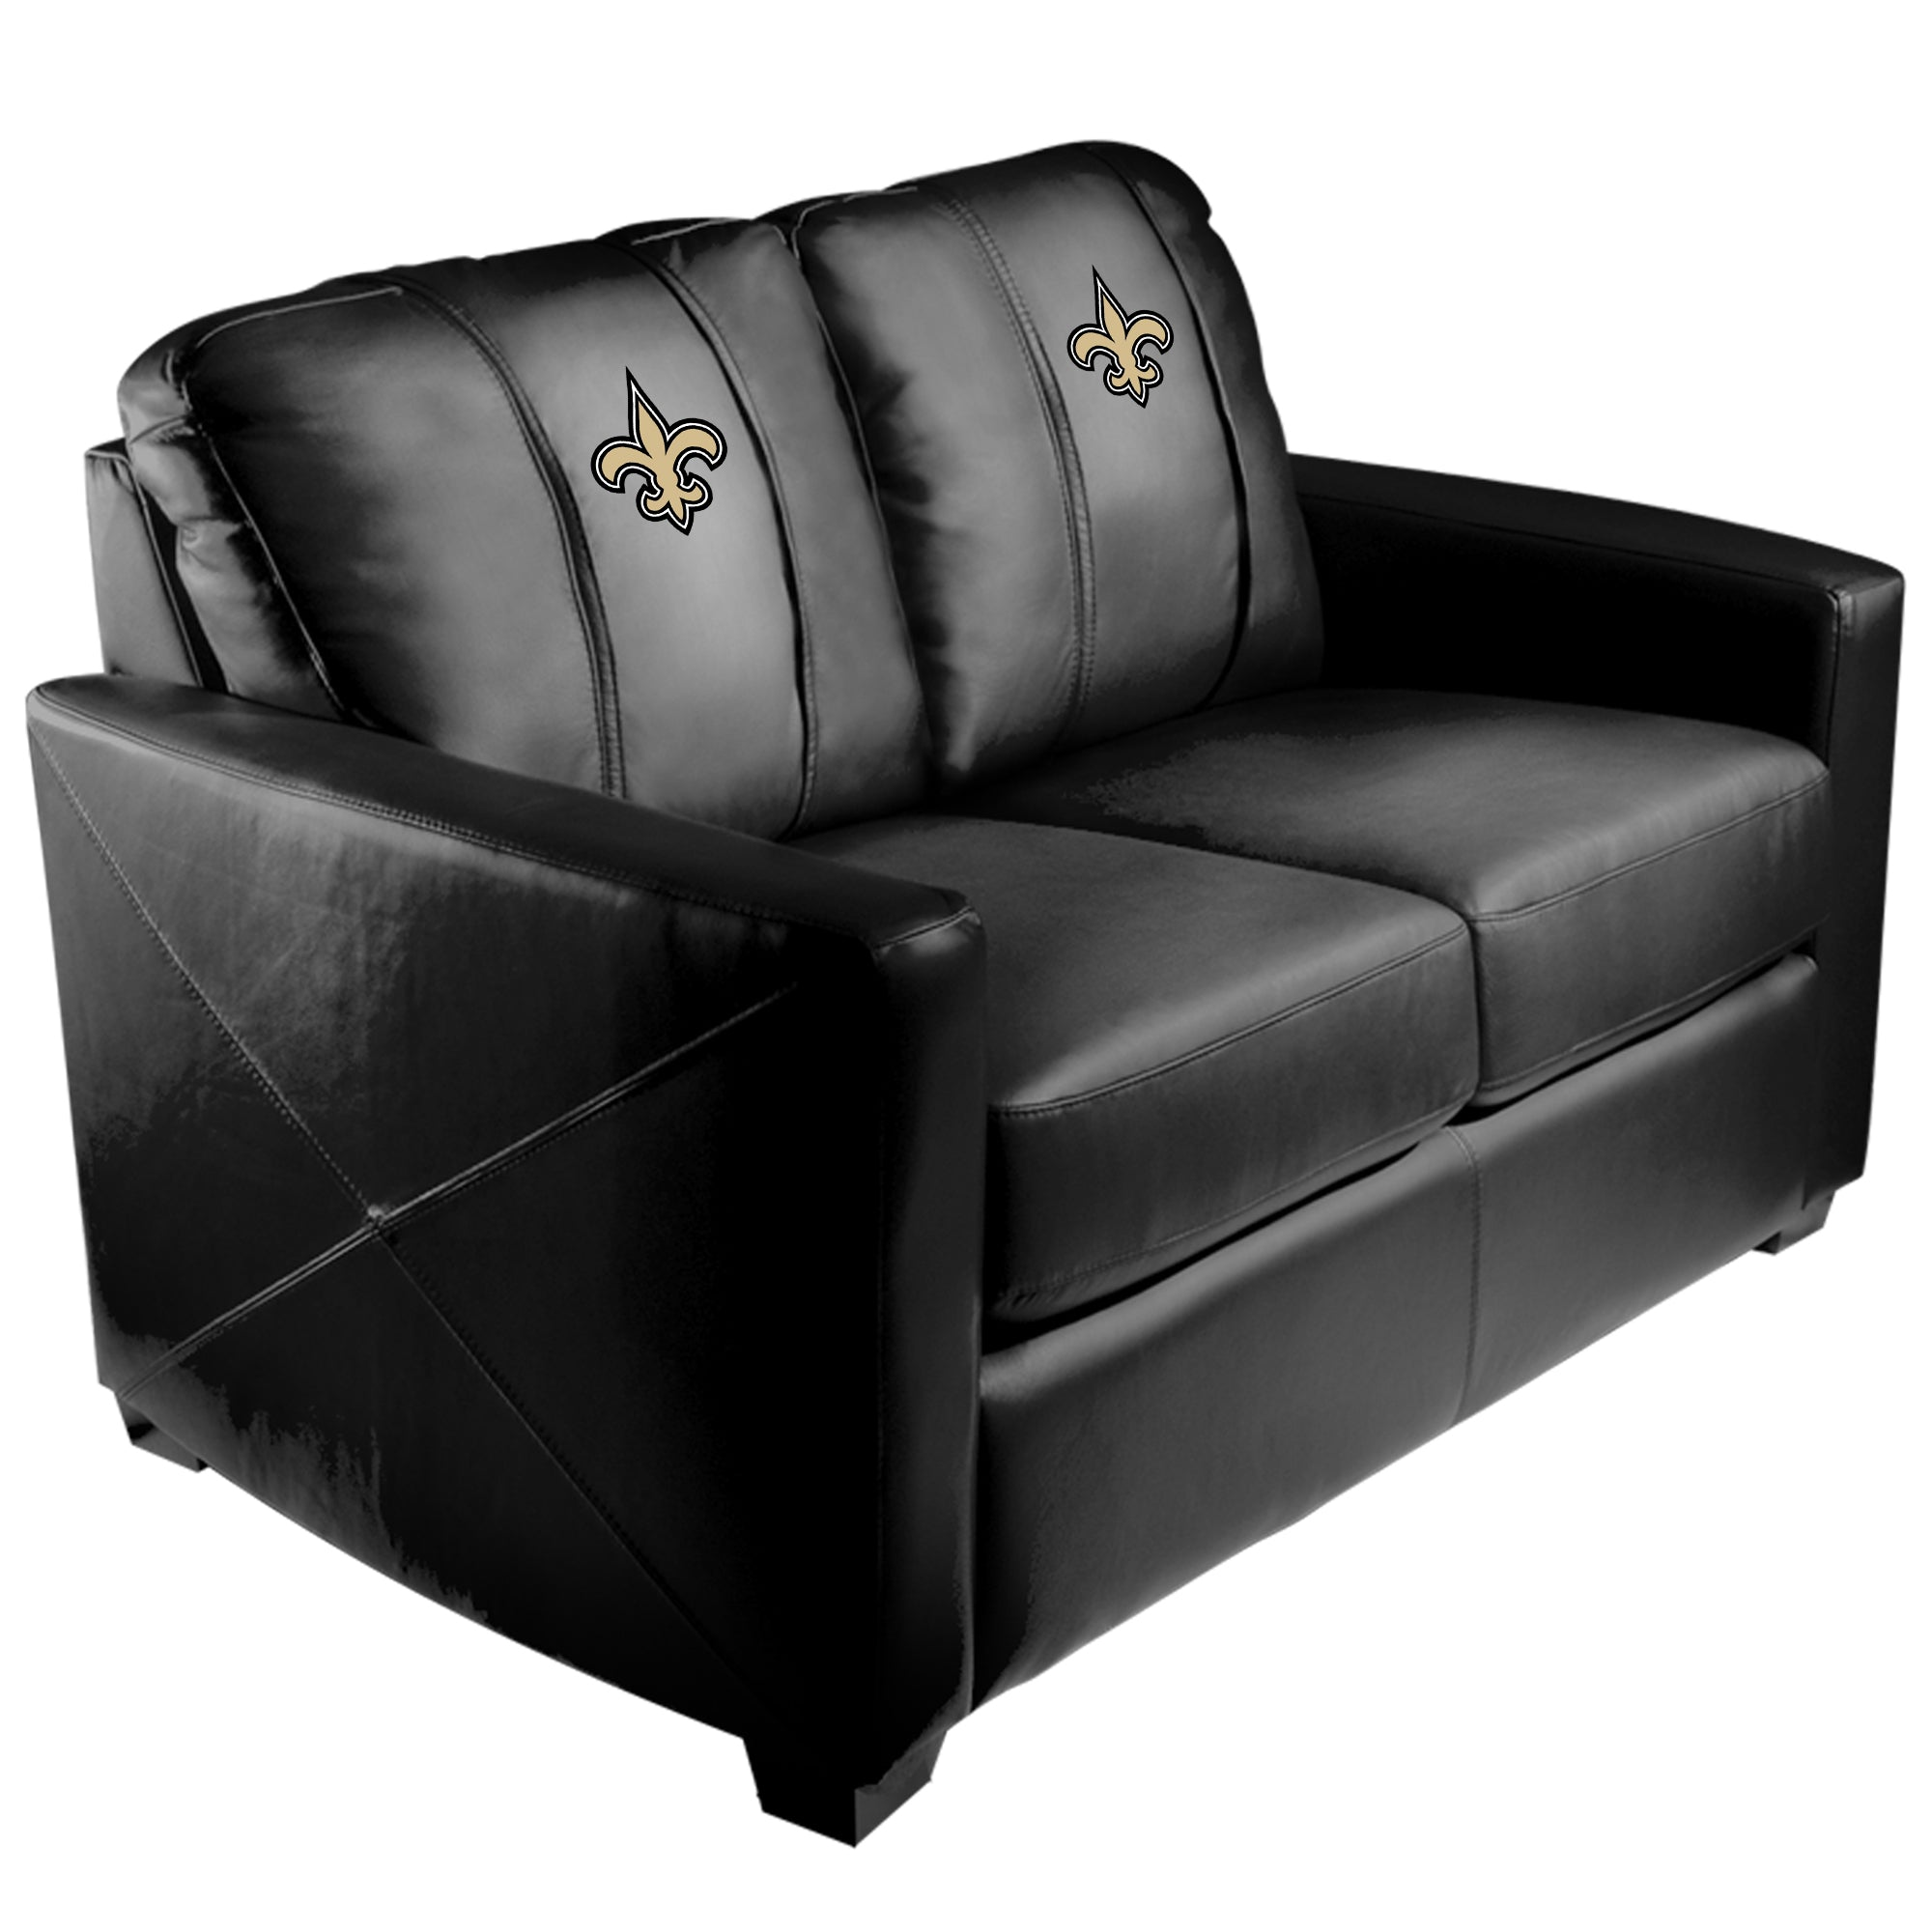 Silver Loveseat with  New Orleans Saints Primary Logo